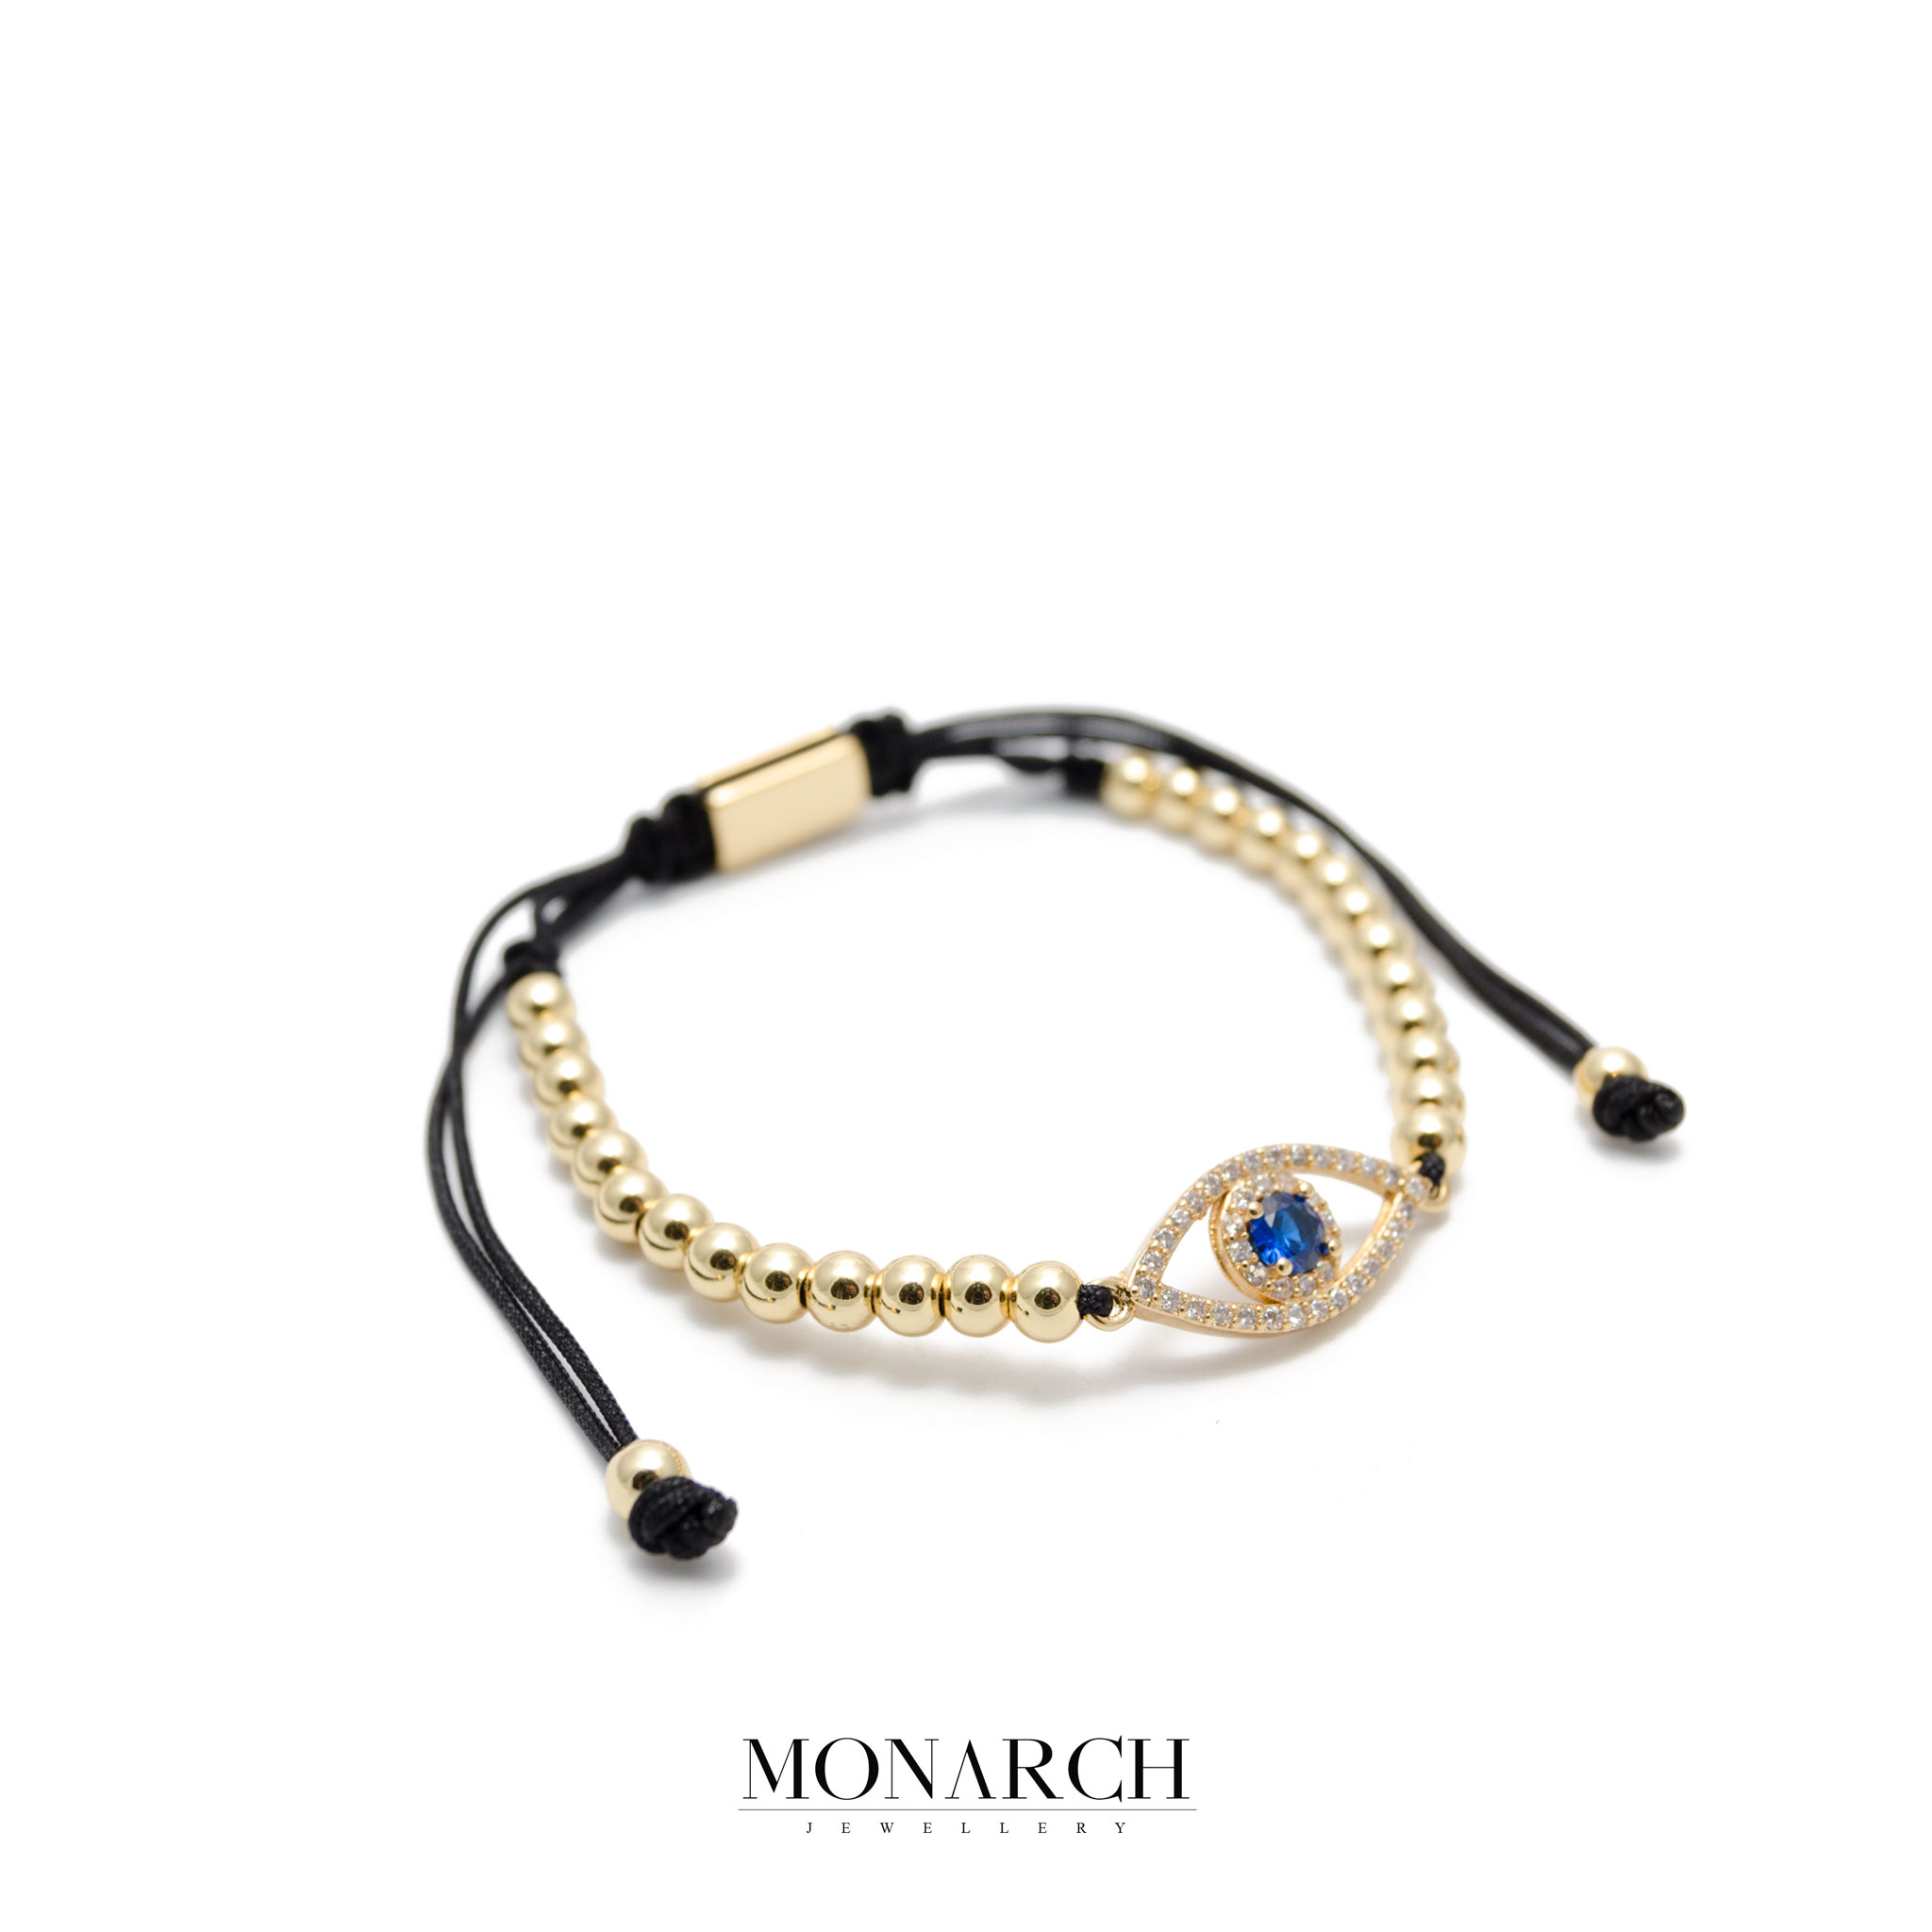 Monarch Jewellery 24k Gold Fatima Eye Charm Luxury Macrame Bracelet